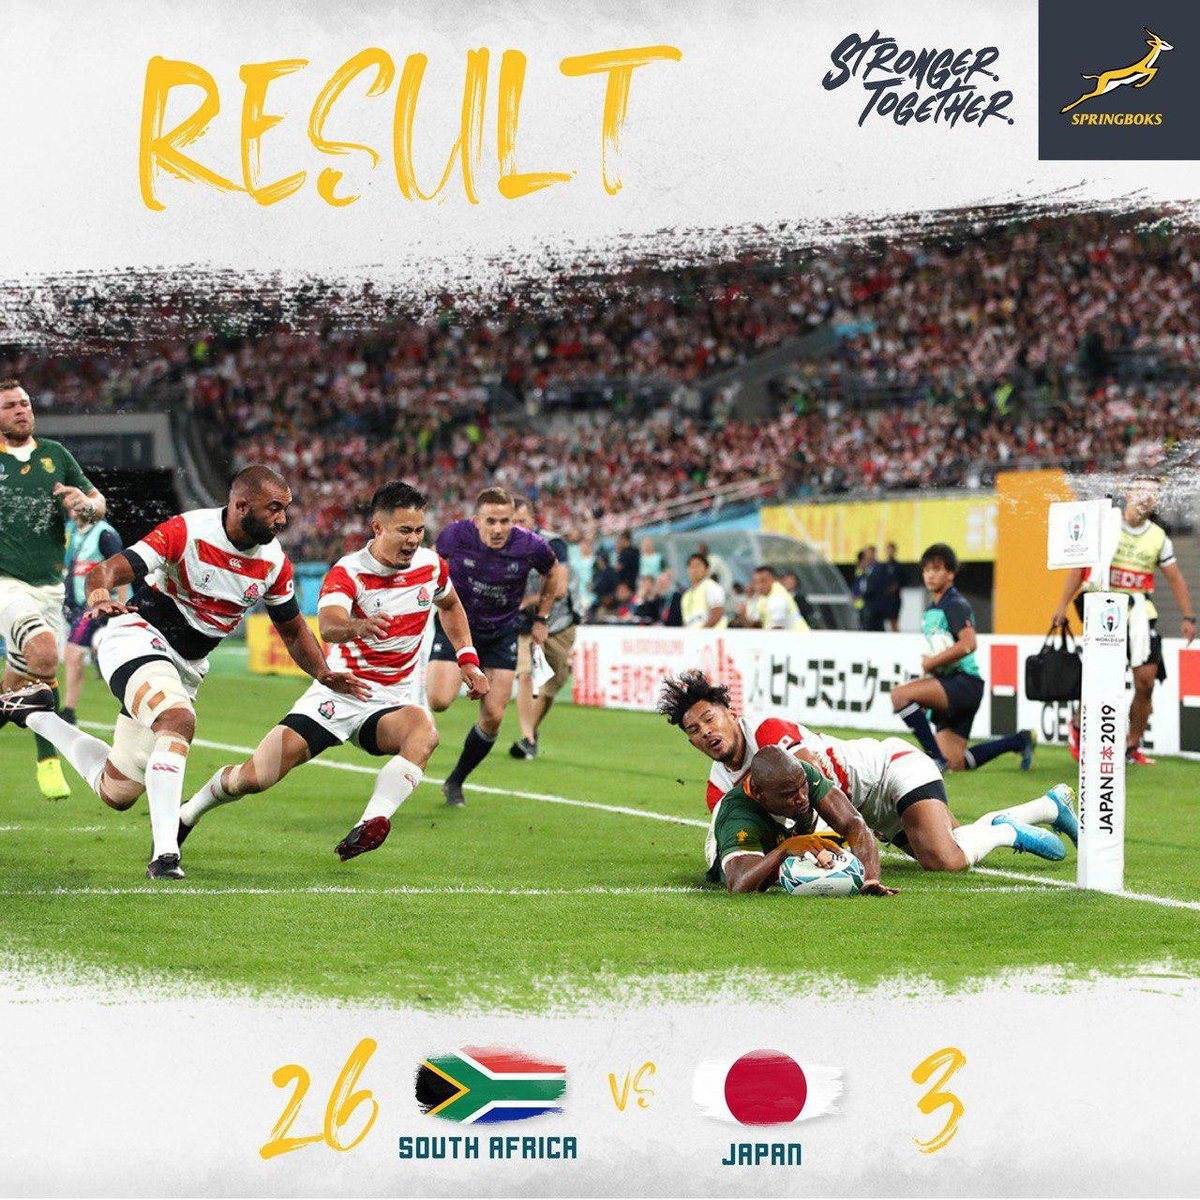 What a match!    Arigatōgozaimashita Japan! You guys can be extremely proud of your team! They played with honour and put their bodies on the line for you!  #StrongerTogether  #RWC2019  #JPNvRSA <br>http://pic.twitter.com/Pg4XcBmP4v